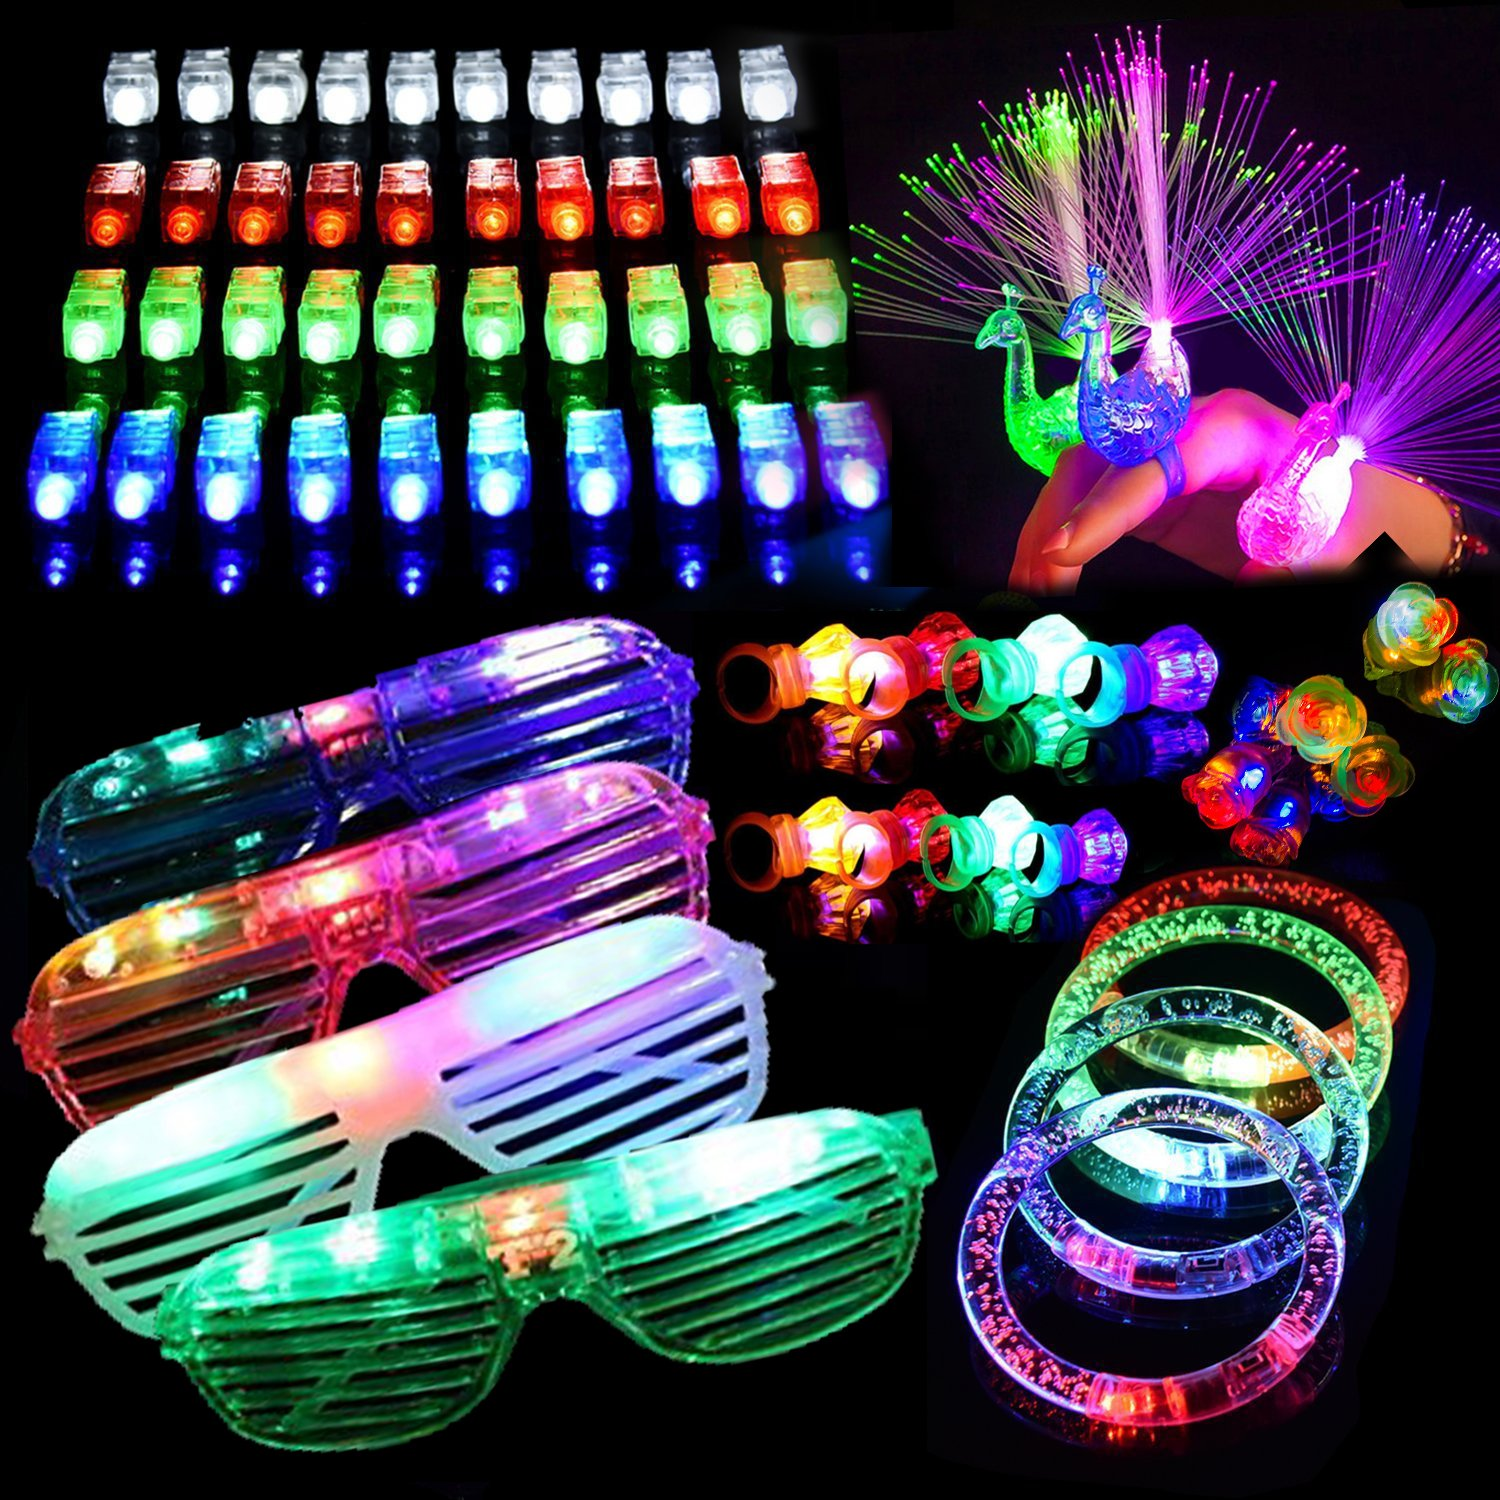 64 PCS LED Light Up Toys Glow in the Dark Party Supplies, Party Favors for Kids with 40 LED Finger Lights, 12 Flashing Bumpy Rings,4 Peafowl Rings, 4 Bracelets and 4 Flashing Slotted Shades Glasses